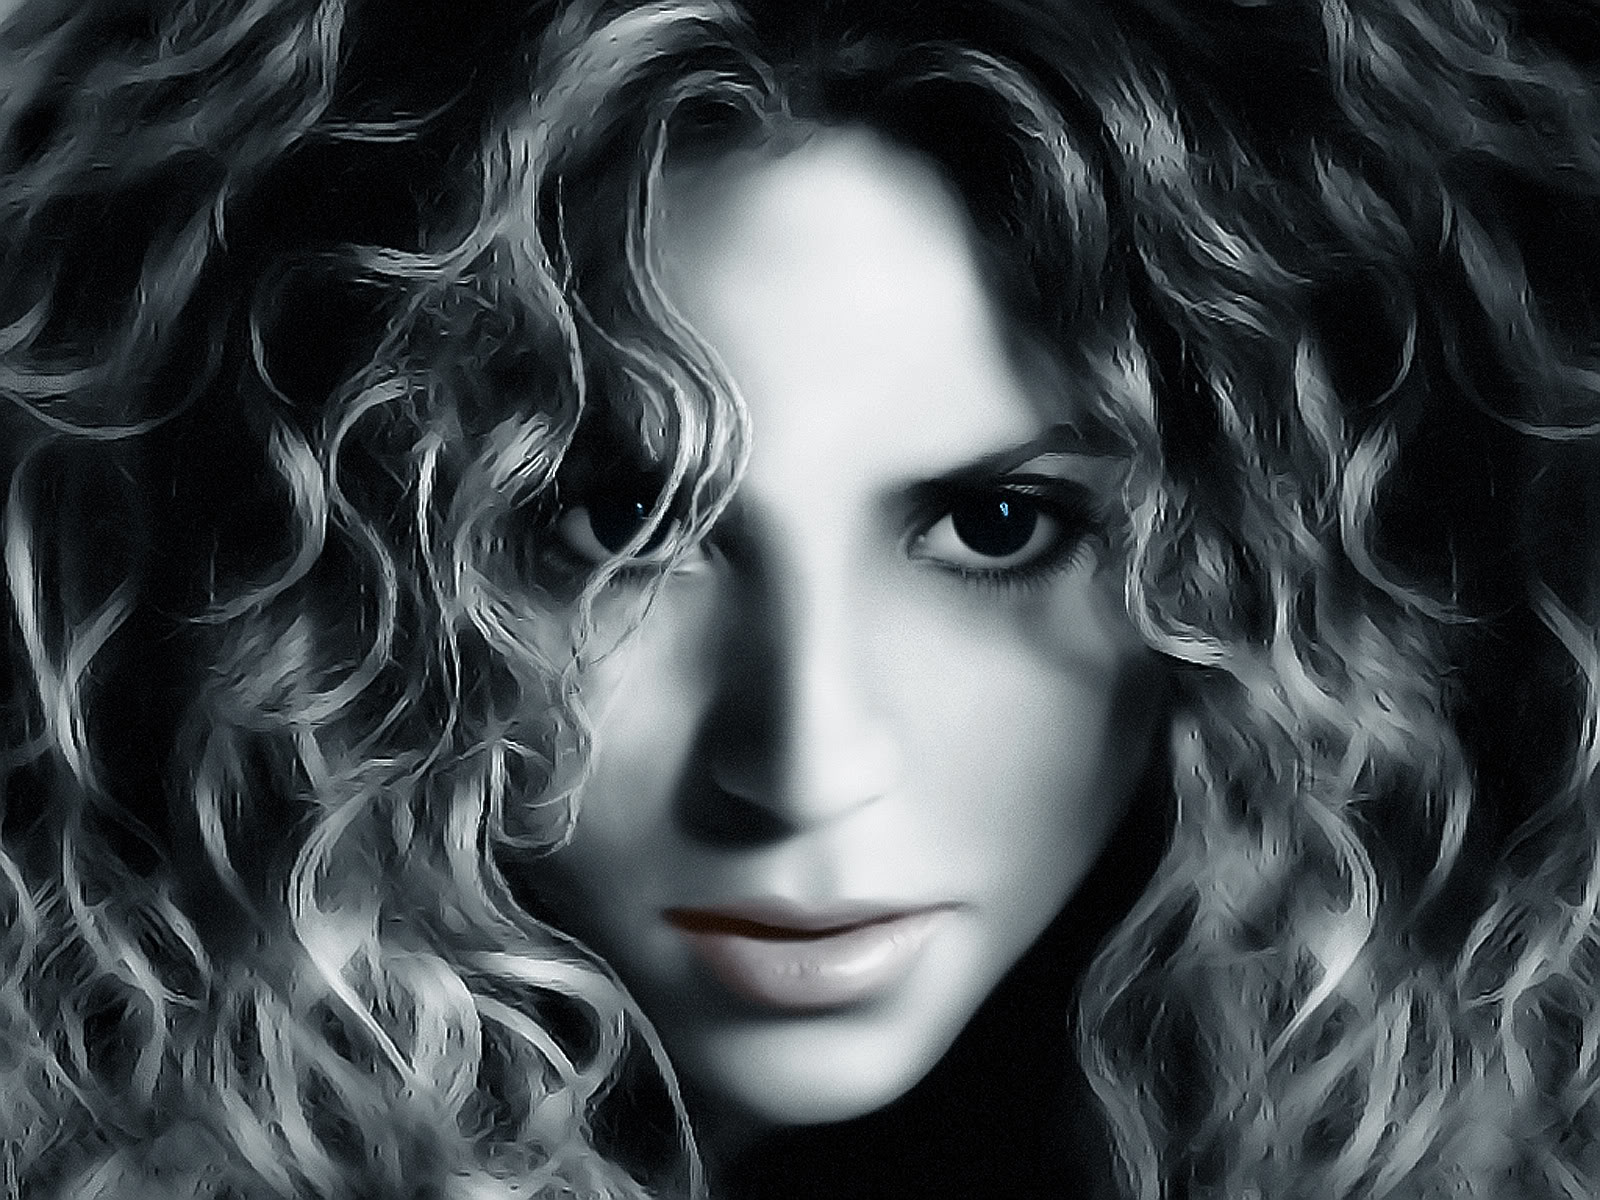 This wallpaper was created for the Community of fans of Shakira. Shakira Isabel Mebarak Ripoll was born on February 2, 1977, in Barranquilla, Colombia.